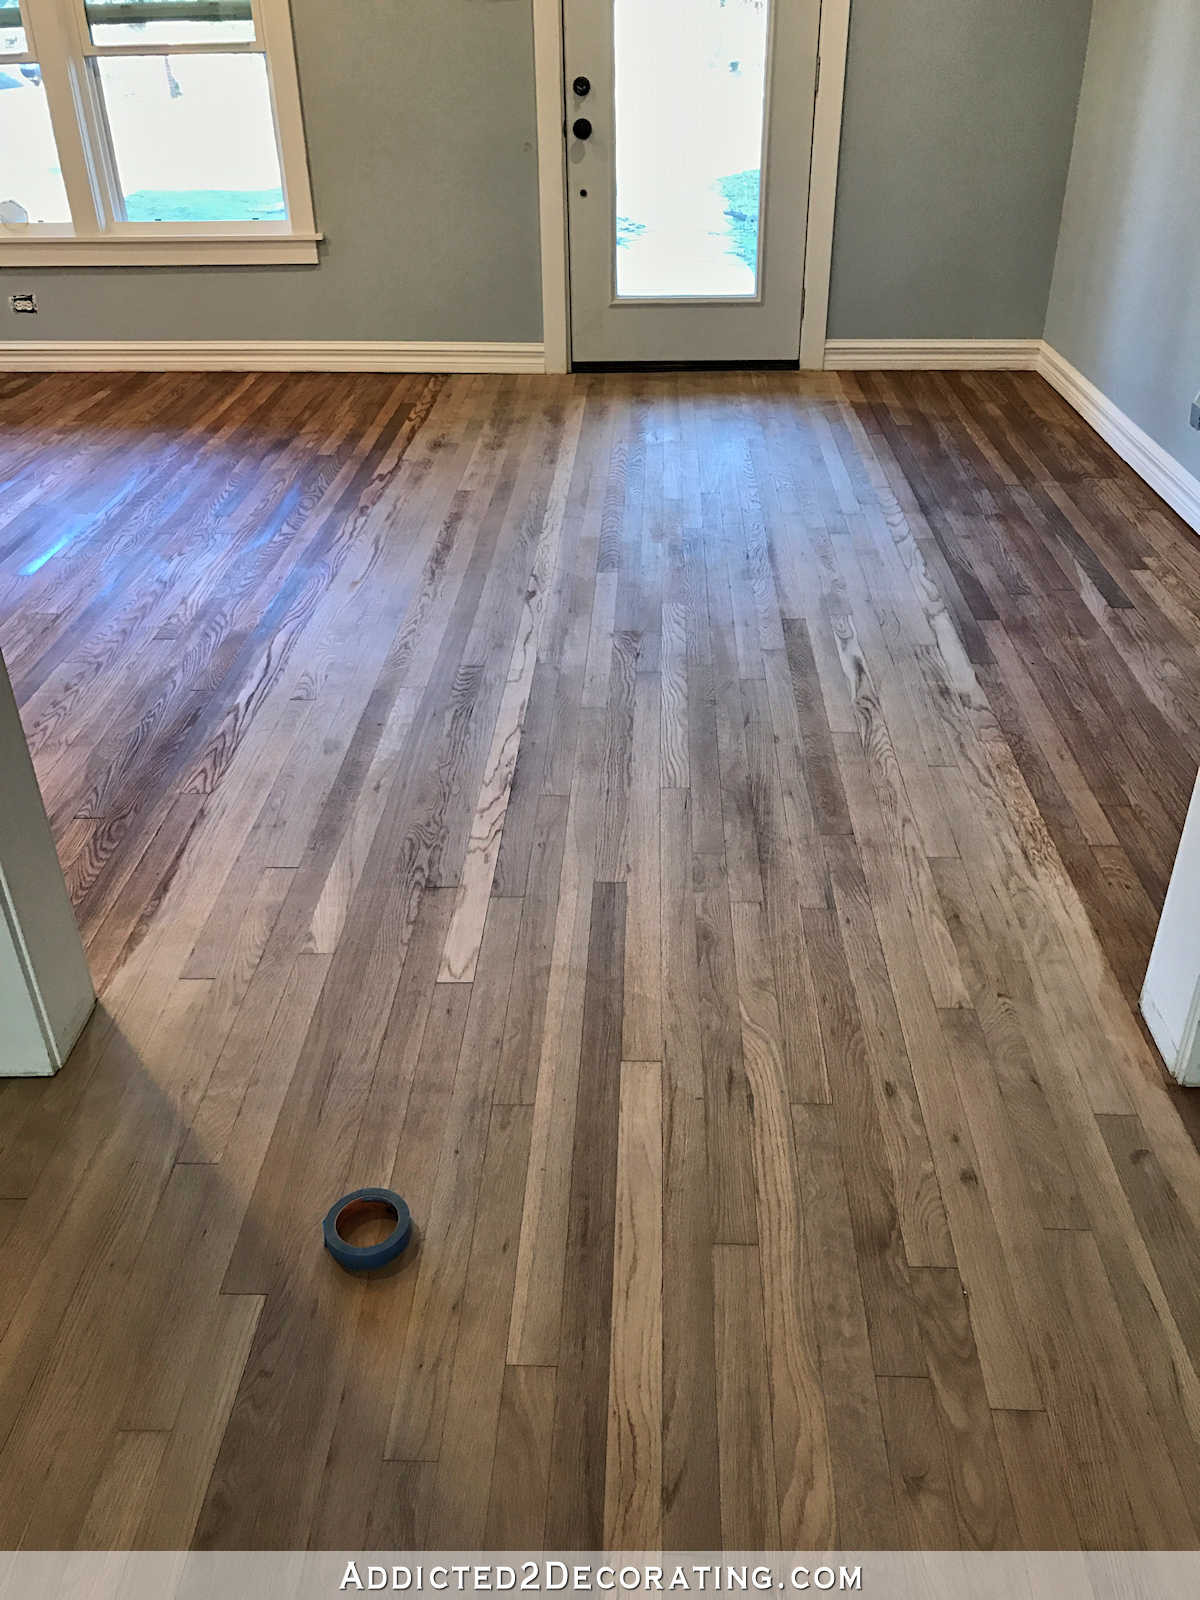 best hardwood floor stain color of adventures in staining my red oak hardwood floors products process intended for staining red oak hardwood floors 4 entryway and living room wood conditioner